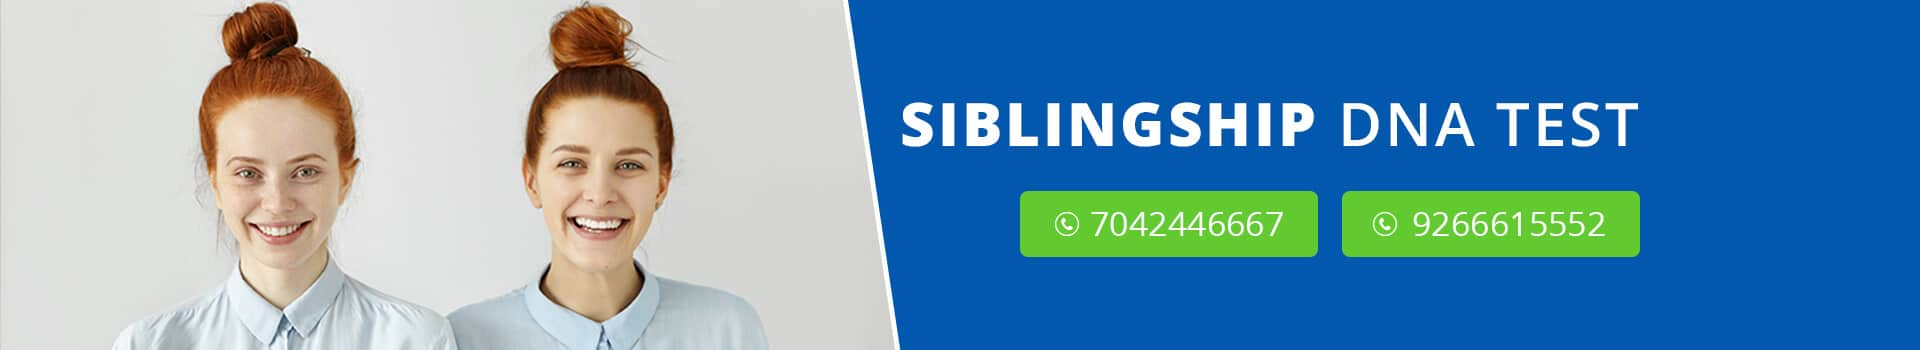 Siblingship DNA Test in India - DDC Laboratories India